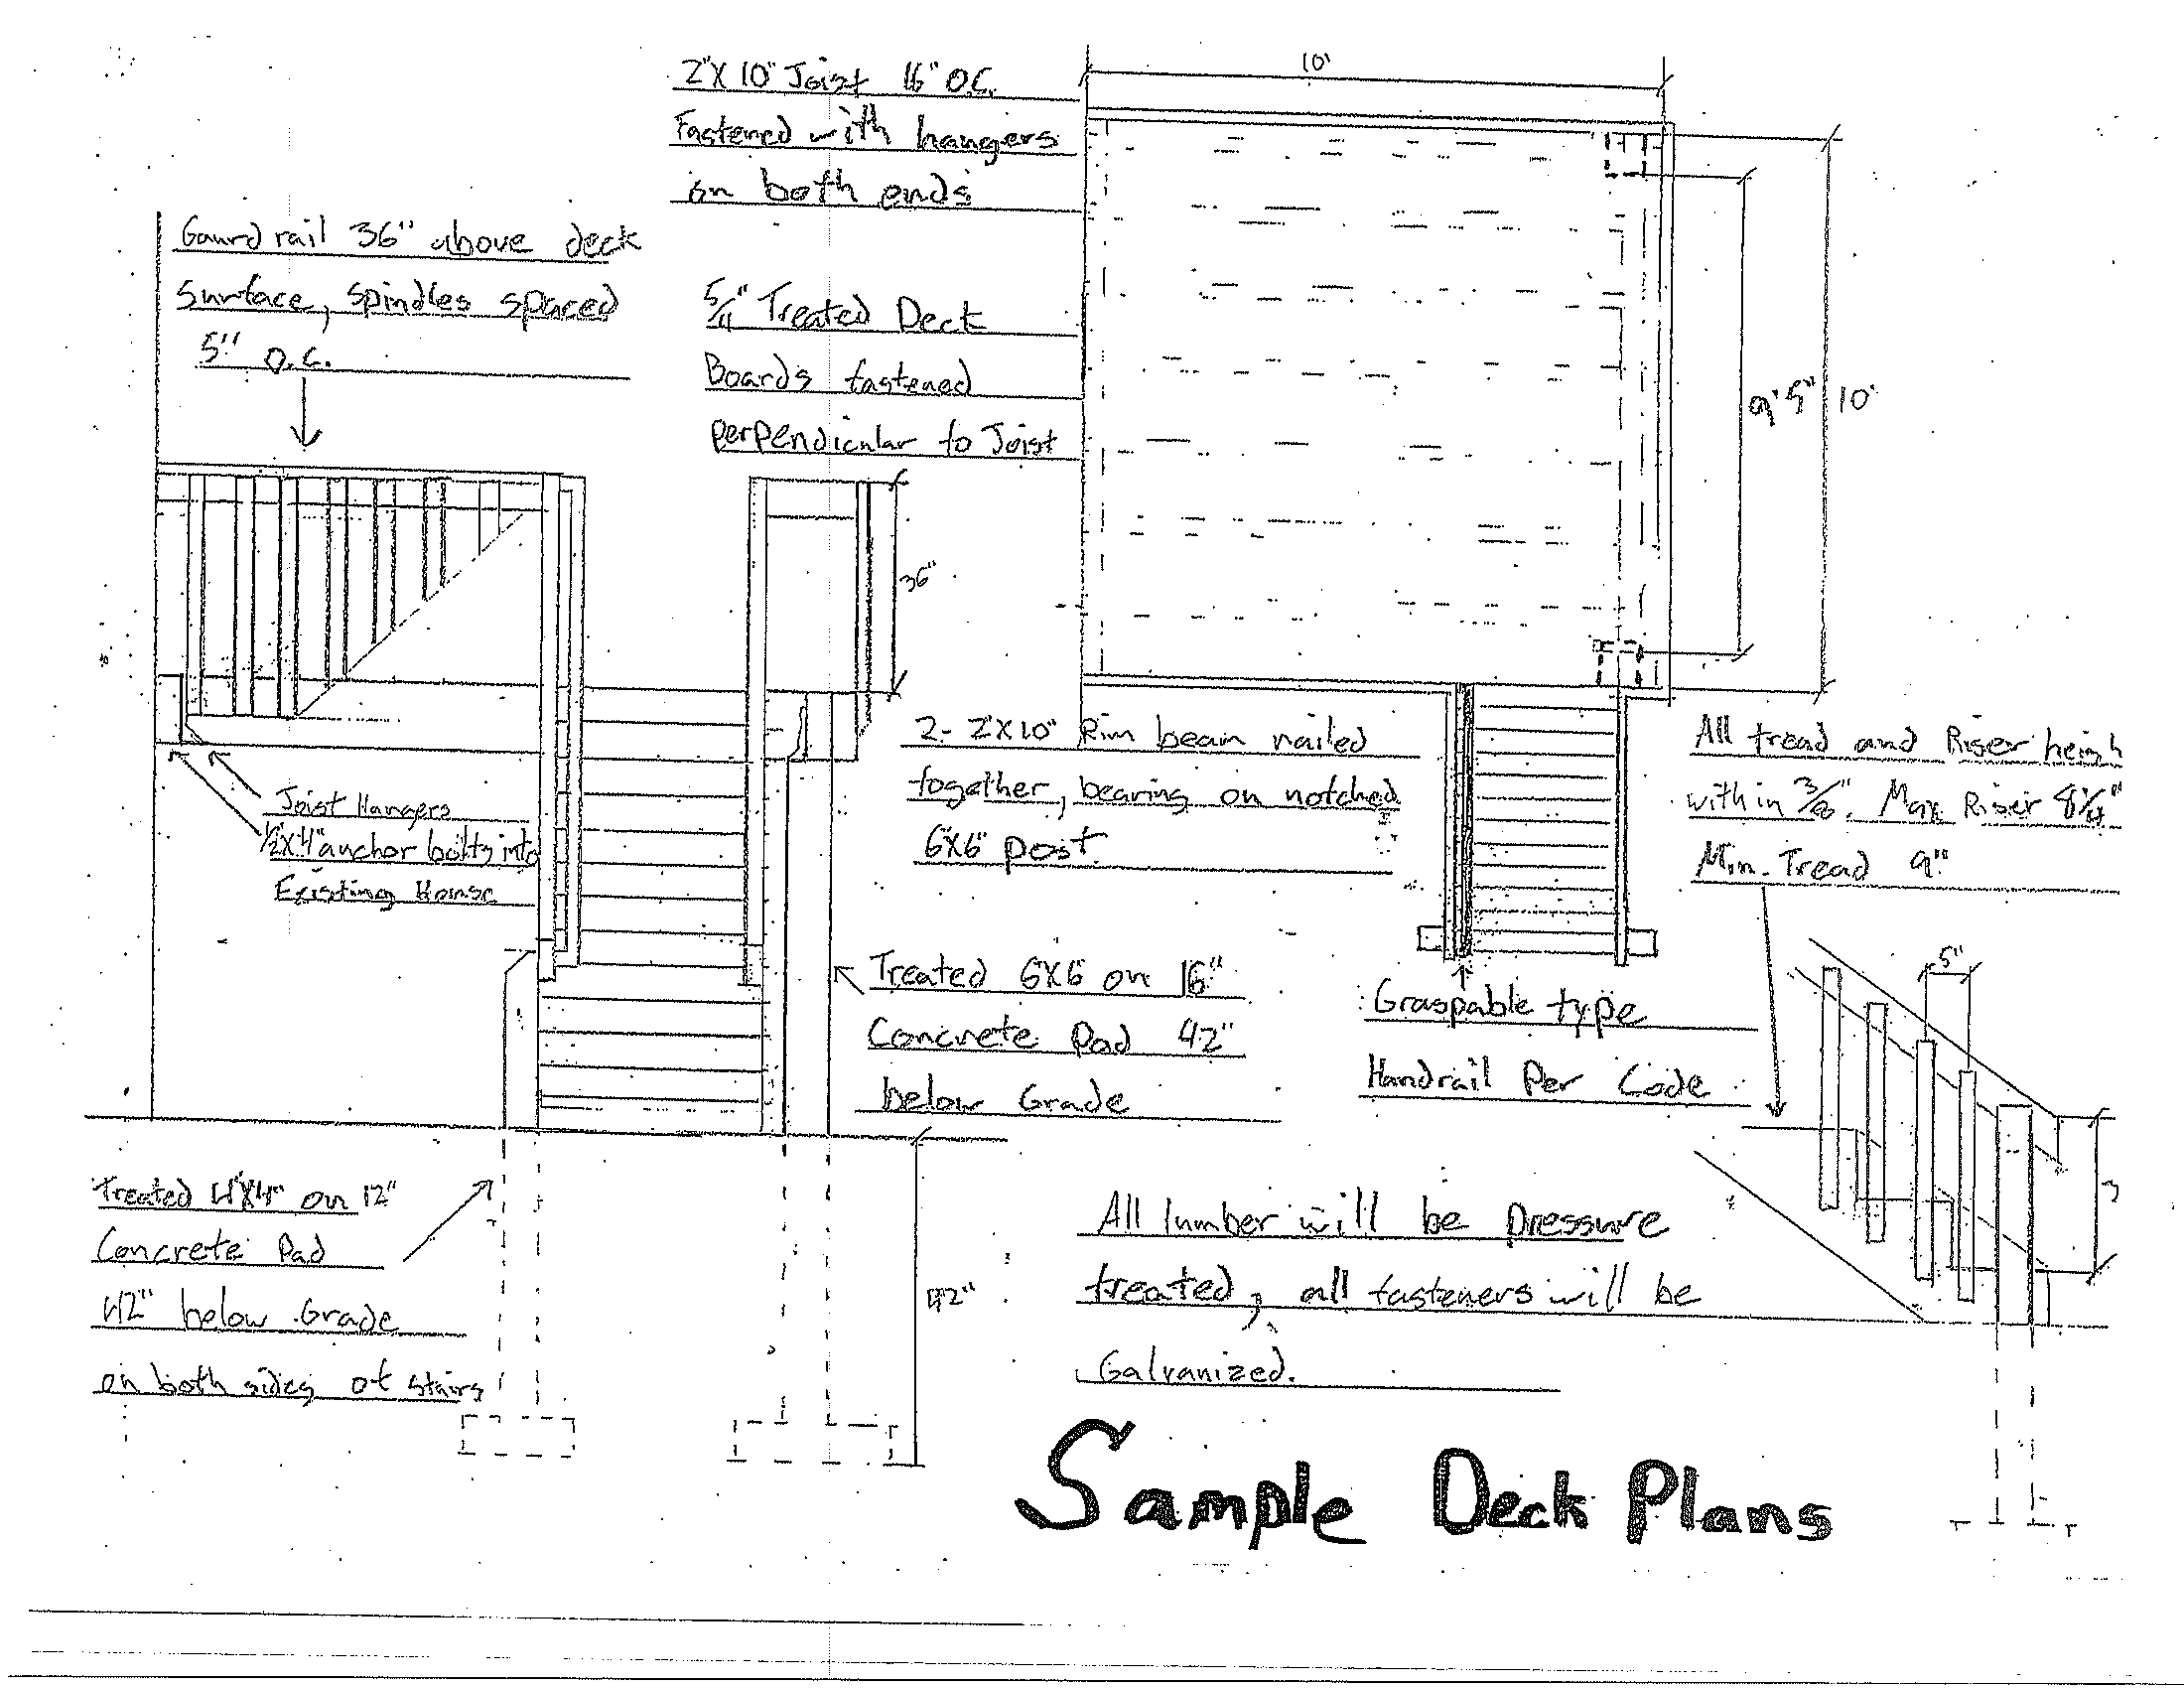 Sample Deck Plan